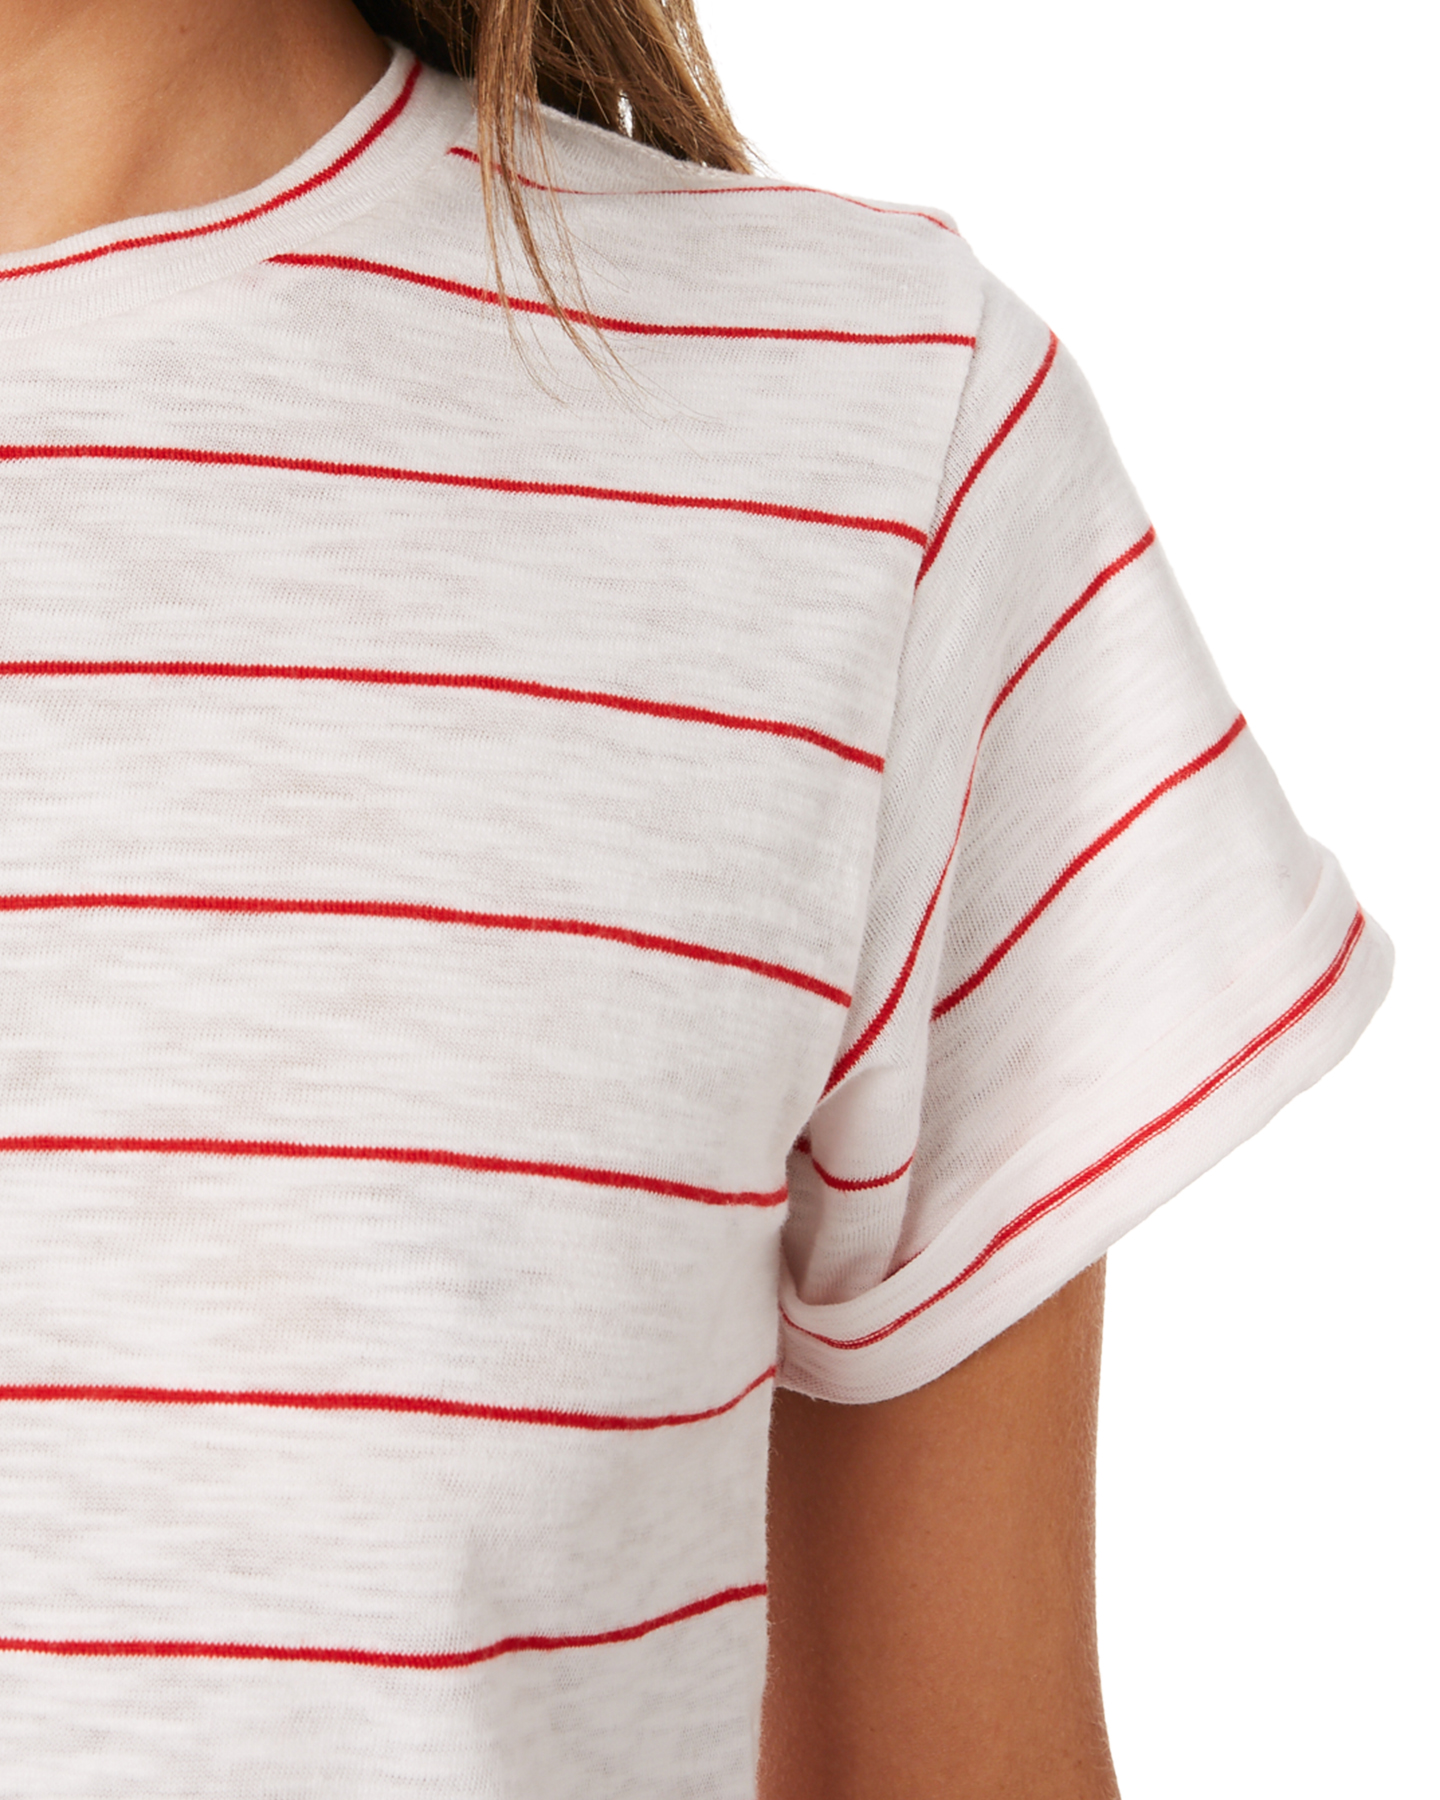 New-Swell-Women-039-s-Ginger-Boyfriend-Tee-Crew-Neck-Short-Sleeve-Cotton-Red thumbnail 14